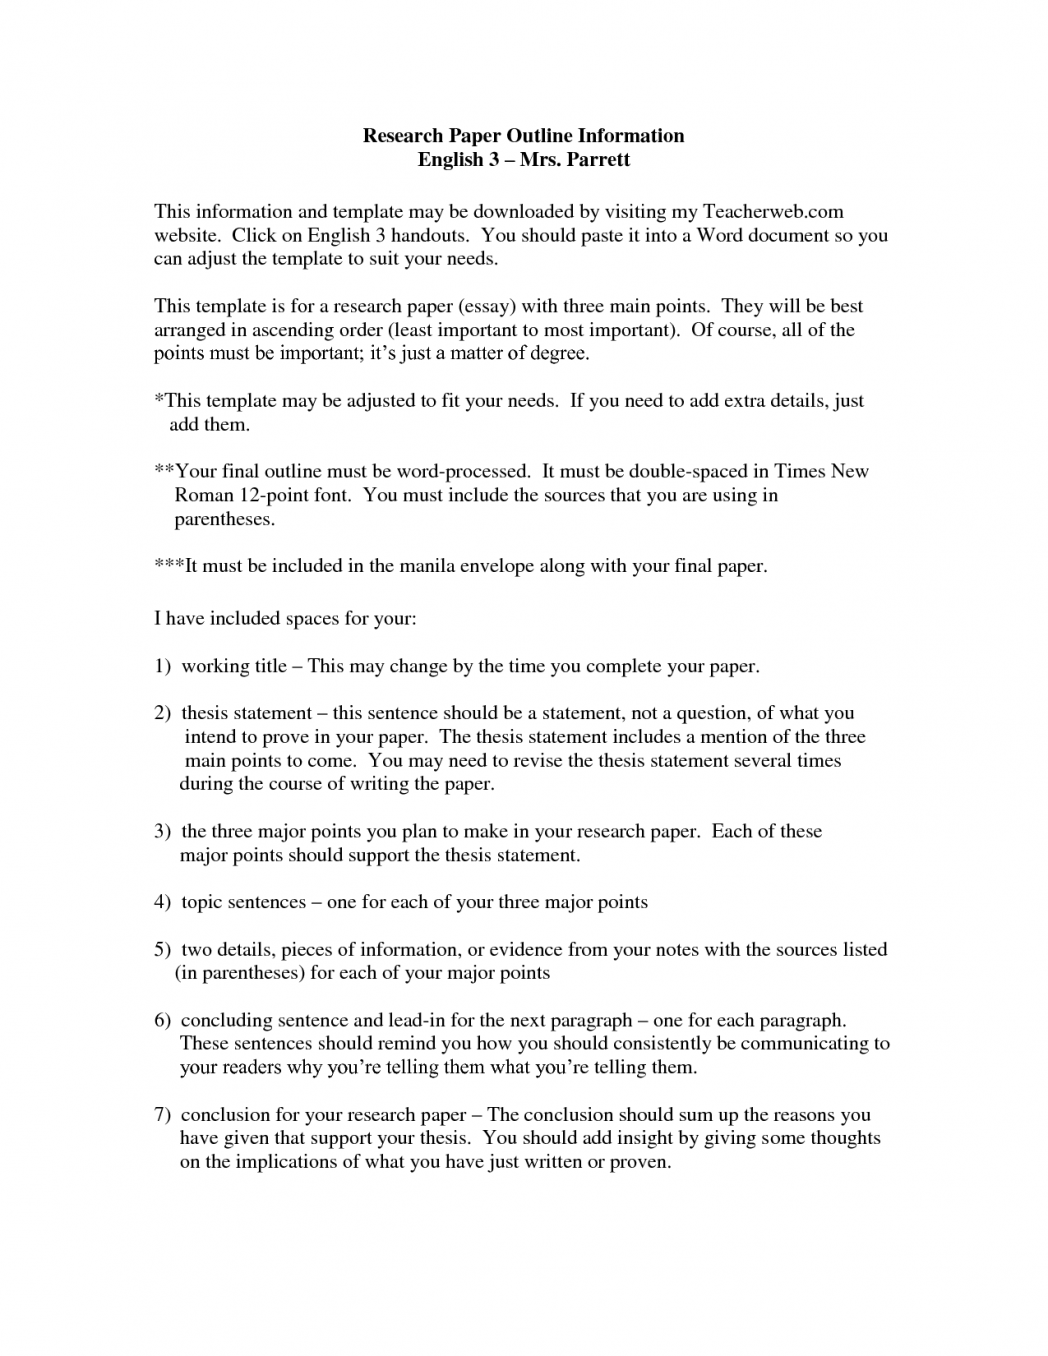 007 Essay Example Nhs Format Sample Outline Aetr Maker Online Examples Of Thesis Statements For Research Papers Template Cgi 1048x1356 Conclusion Staggering Essays Full